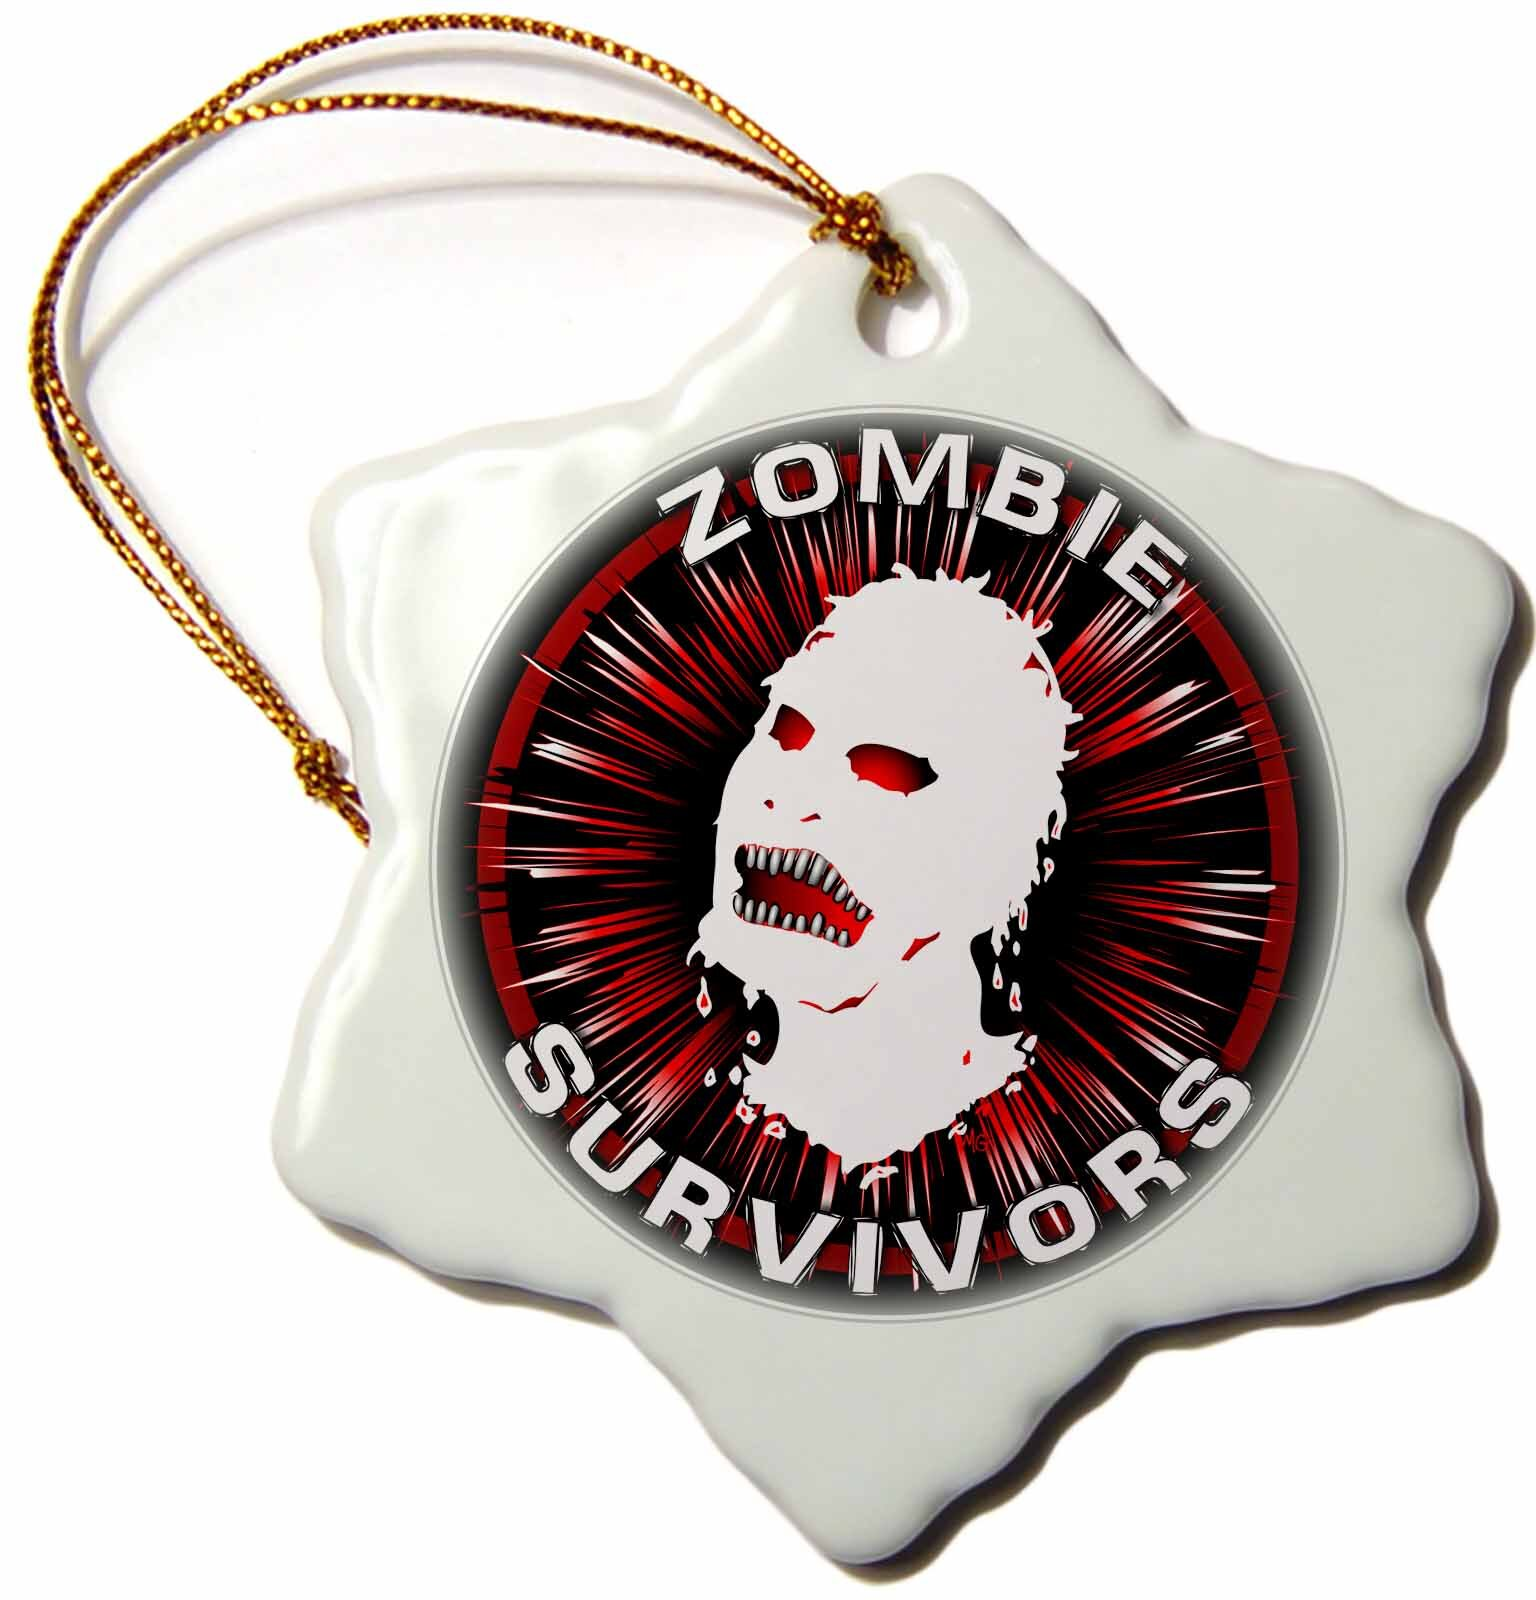 Zombie Christmas Ornaments You Ll Love In 2021 Wayfair